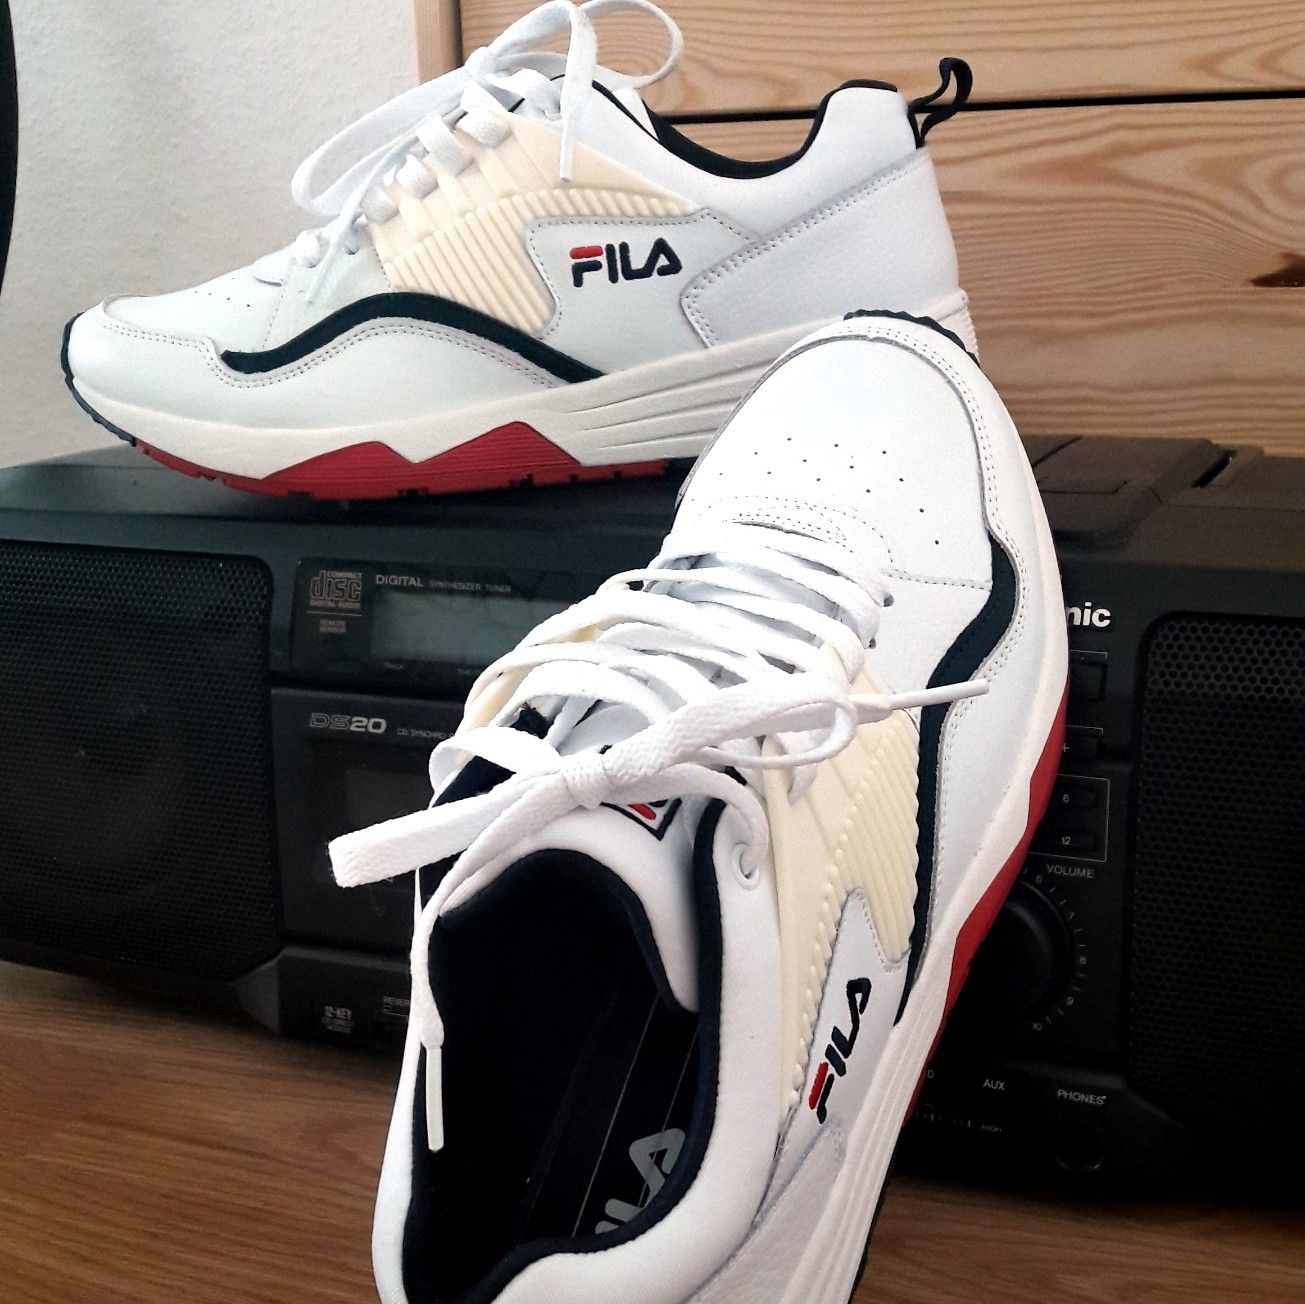 Fila Riot F Low sneakers